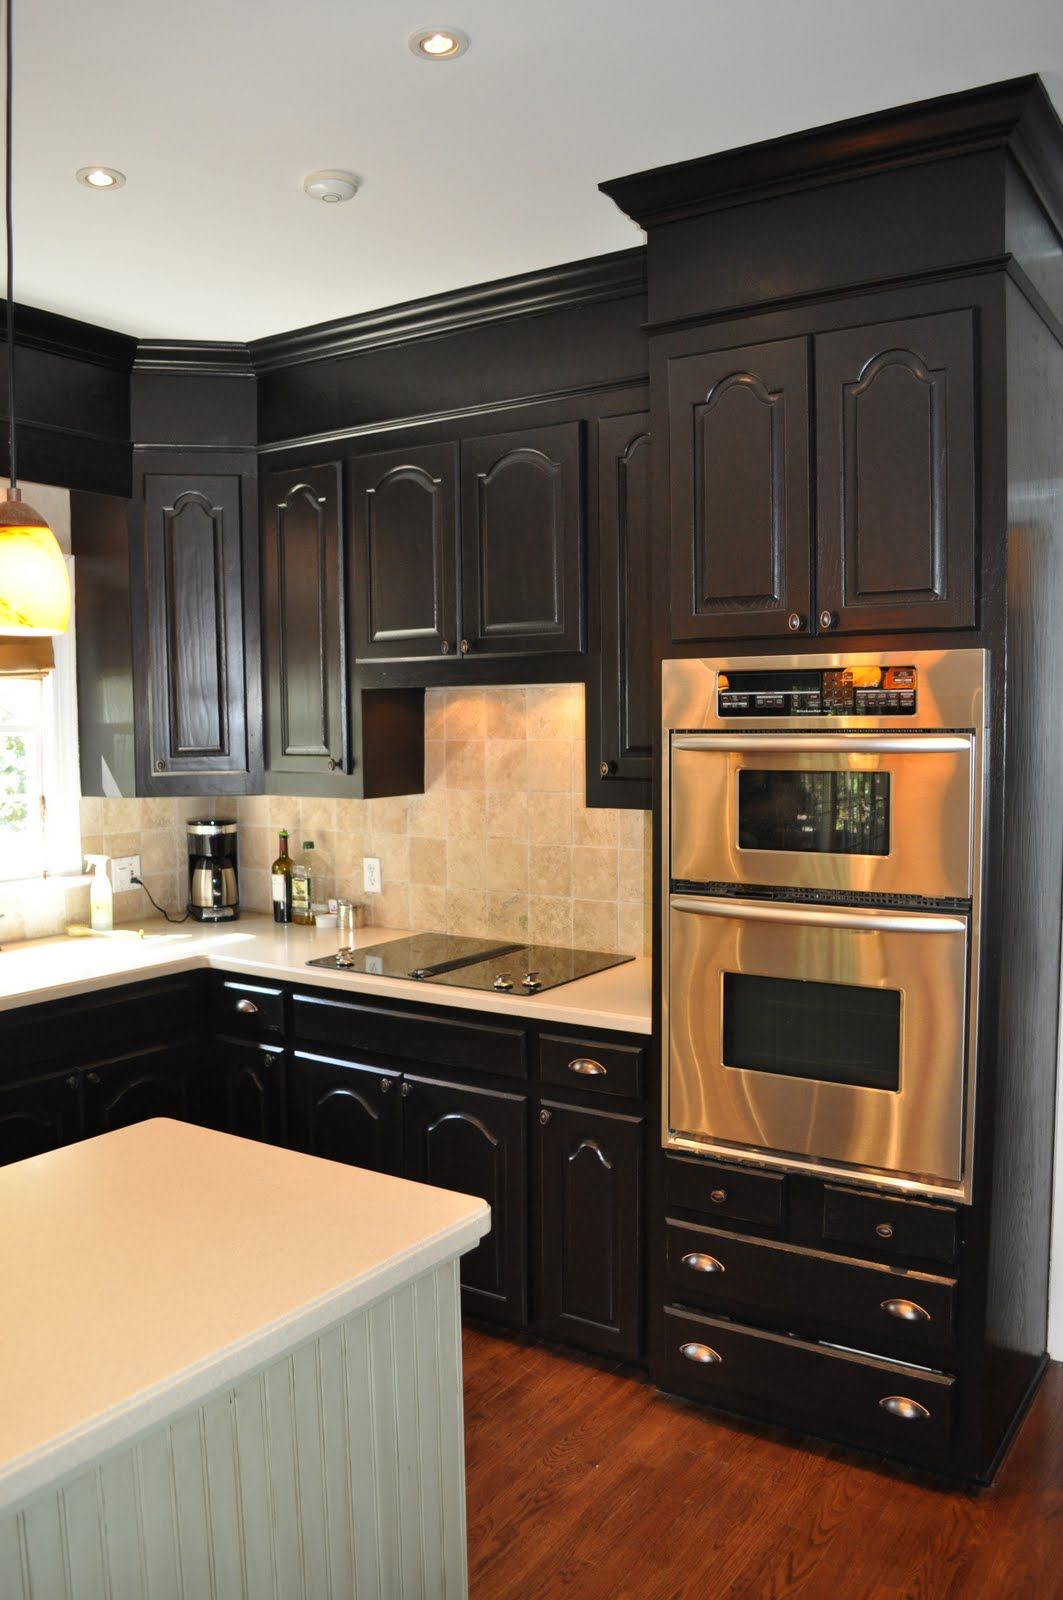 Finding Fabulous Our Kitchen Finally Finished Kitchen Design Small Home Kitchens Kitchen Soffit